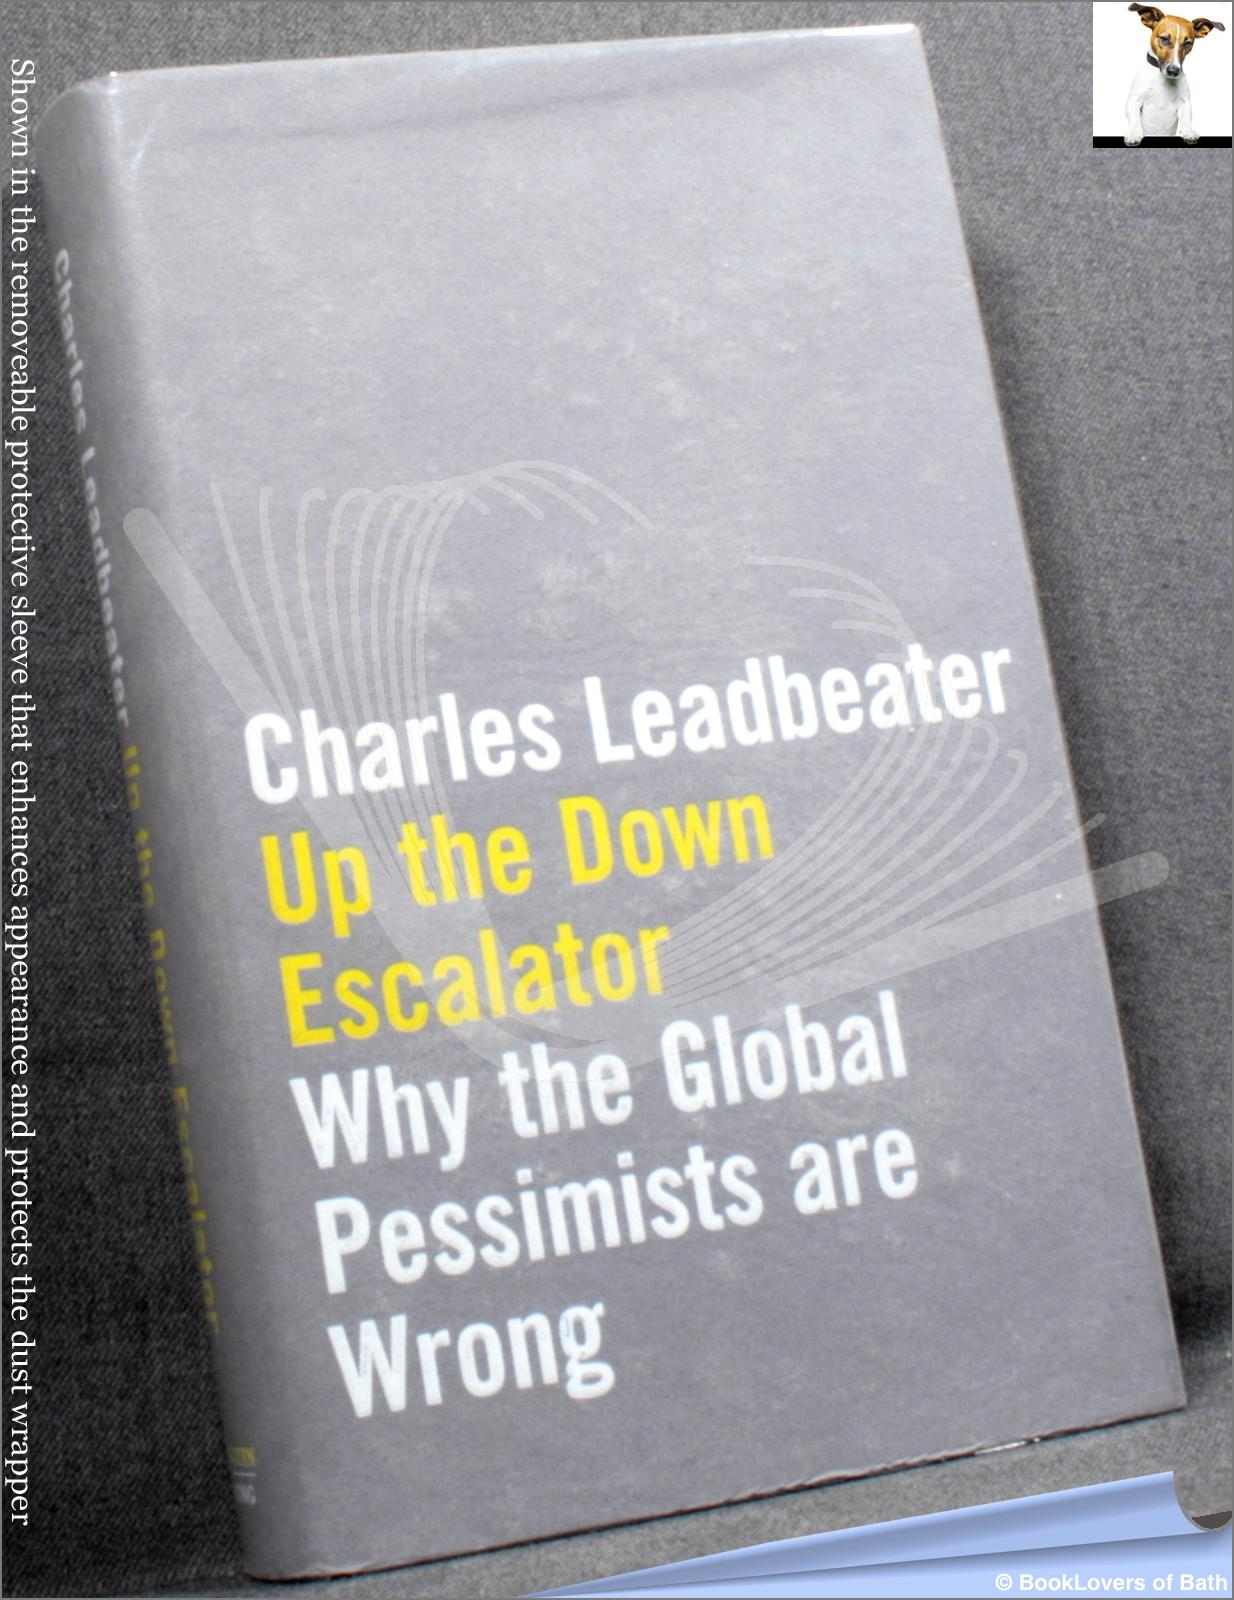 an overview of up the down escalator why the global pessimists are wrong by charles leadbeater American invitation read preview newspaper article the journal (newcastle writer charles leadbeater visited hartlepool yesterday [24th] to deliver a speech about public sector services mr leadbeater, who is the author of up the down escalator, and why the global pessimists are wrong, spoke at the hartlepool.